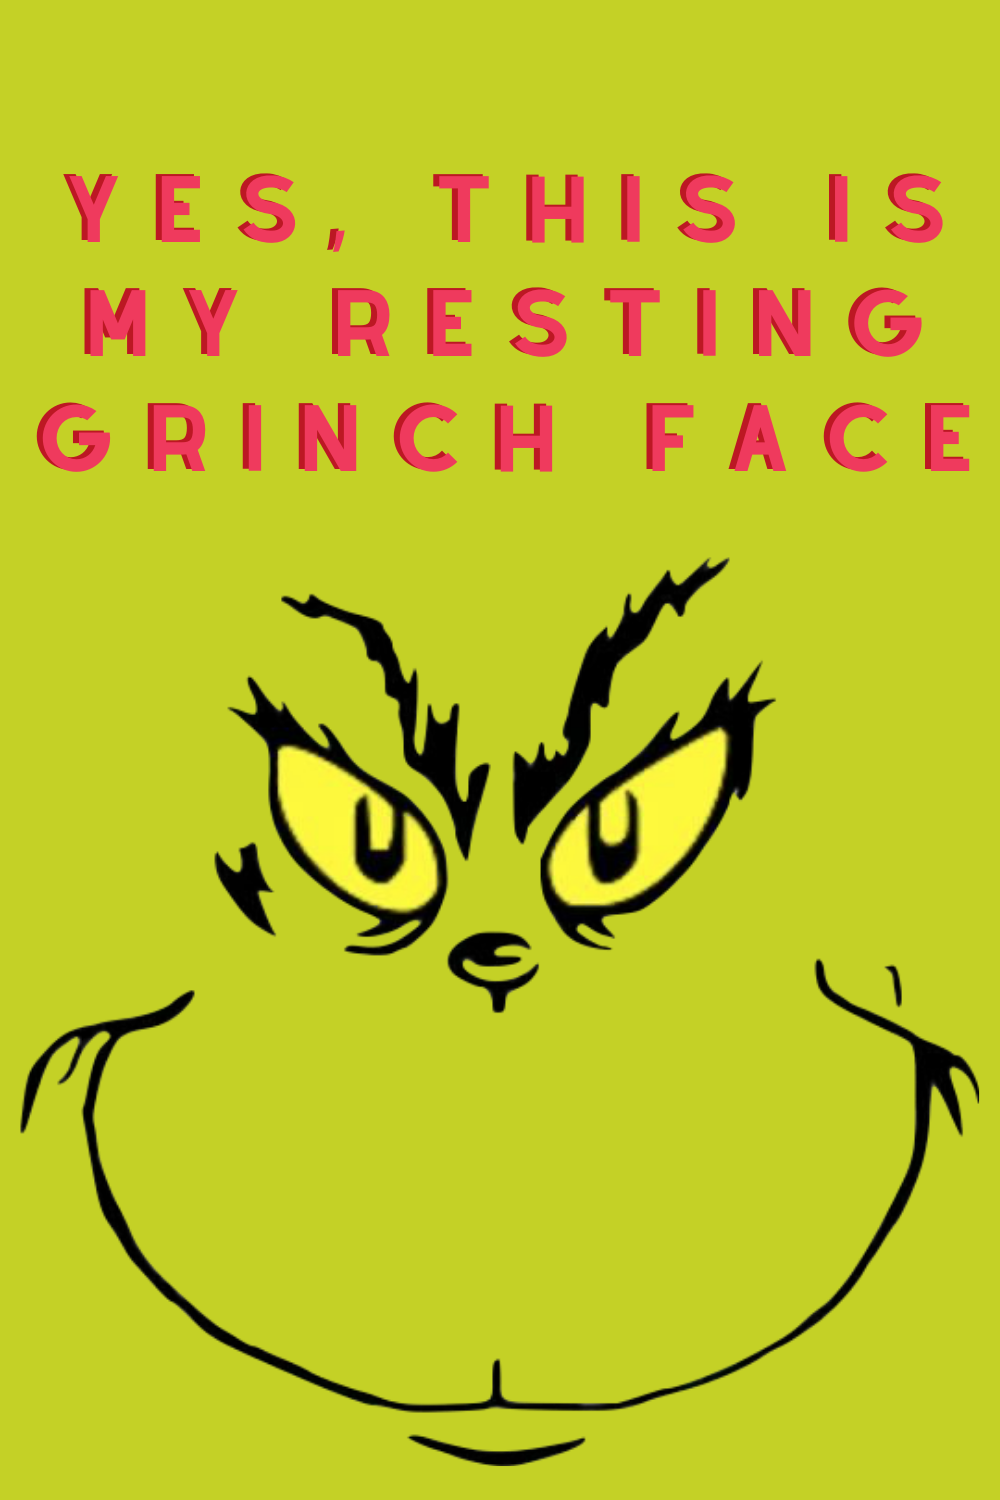 grinch images